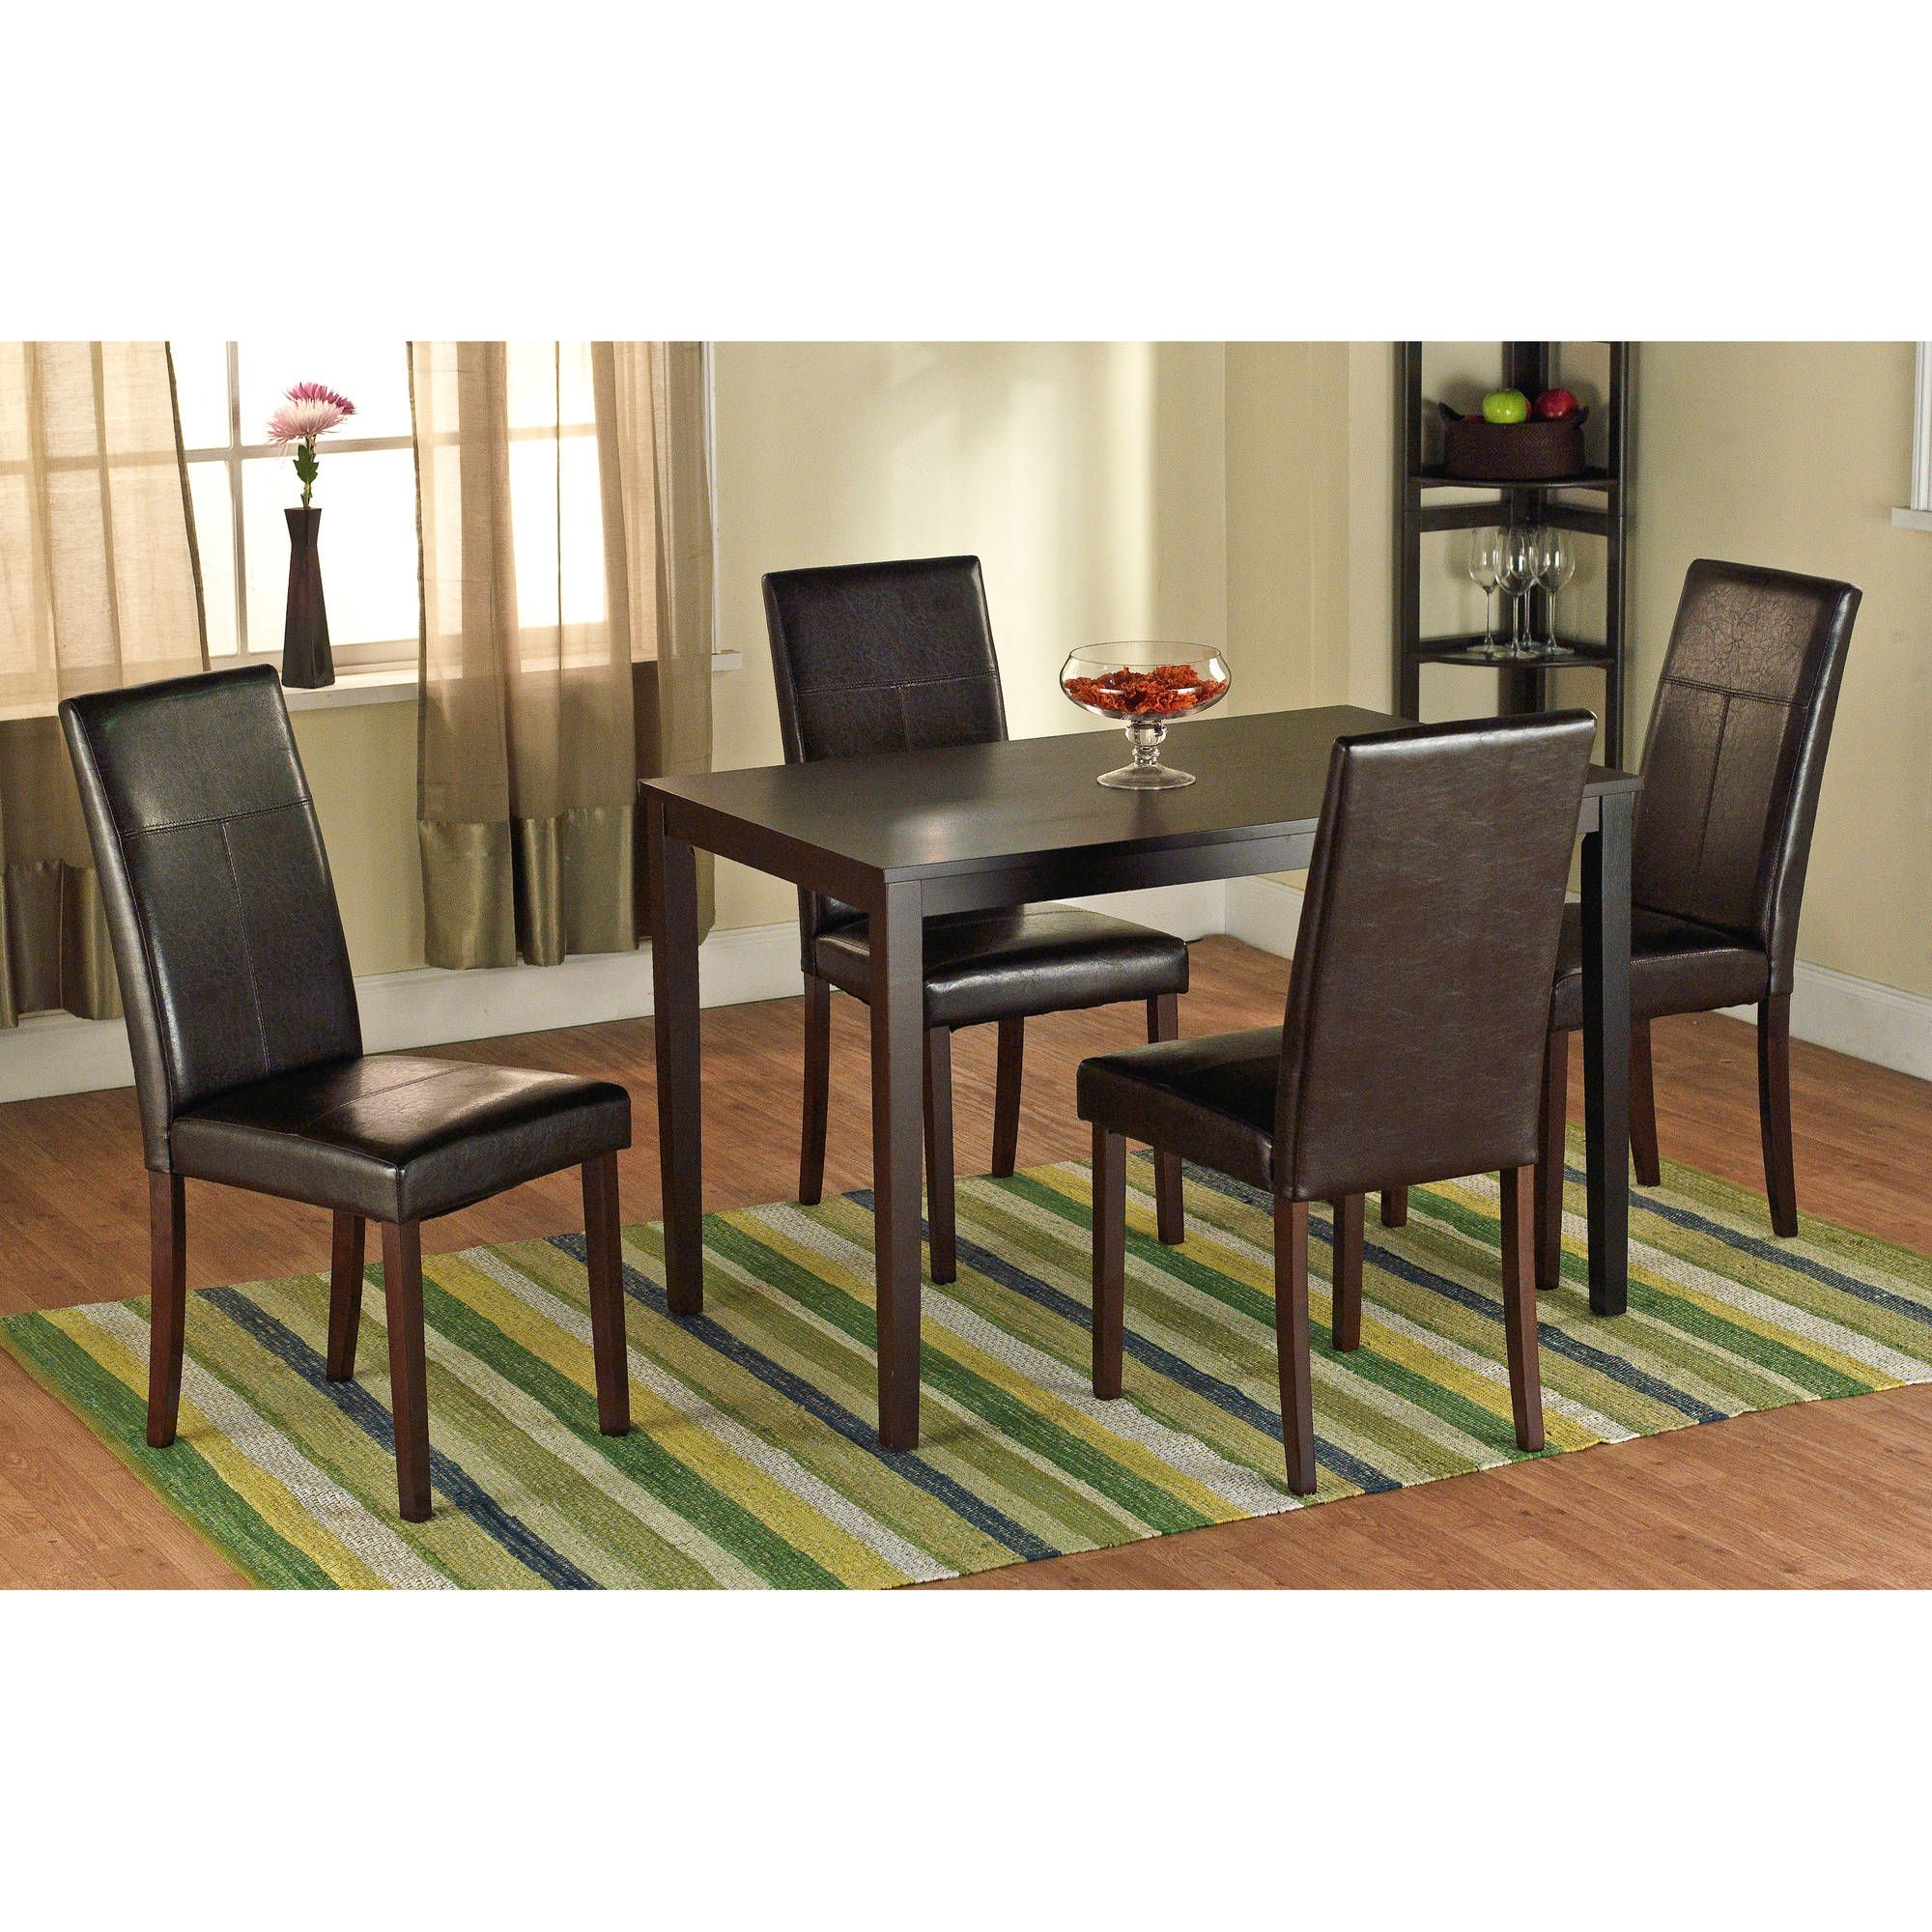 Walmart Kitchen Chair Parsons Dining Chairs Unique Dining Room